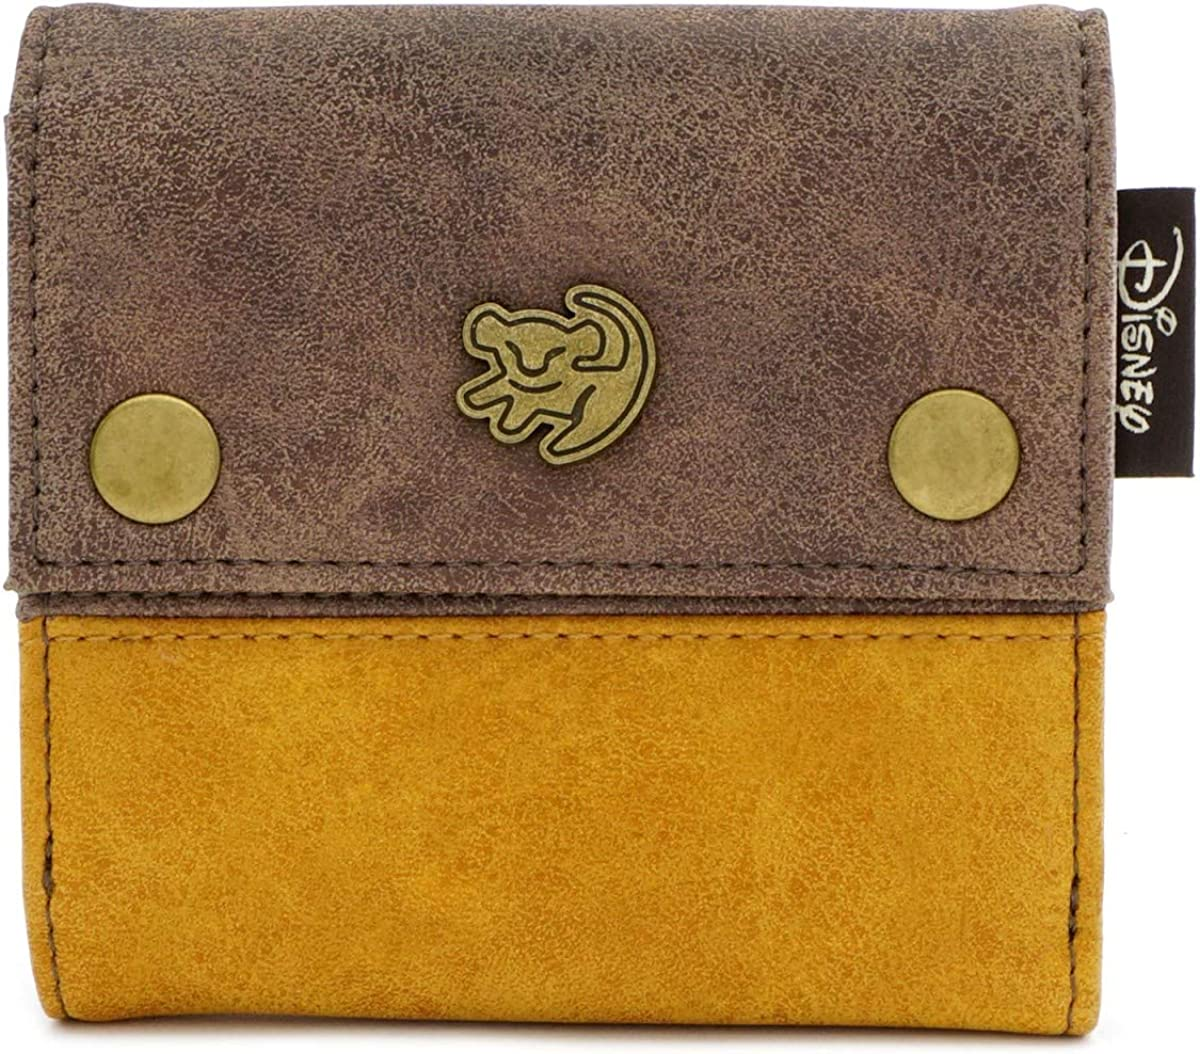 Loungefly x The Lion King Tribal Patterned Snap Trifold Wallet